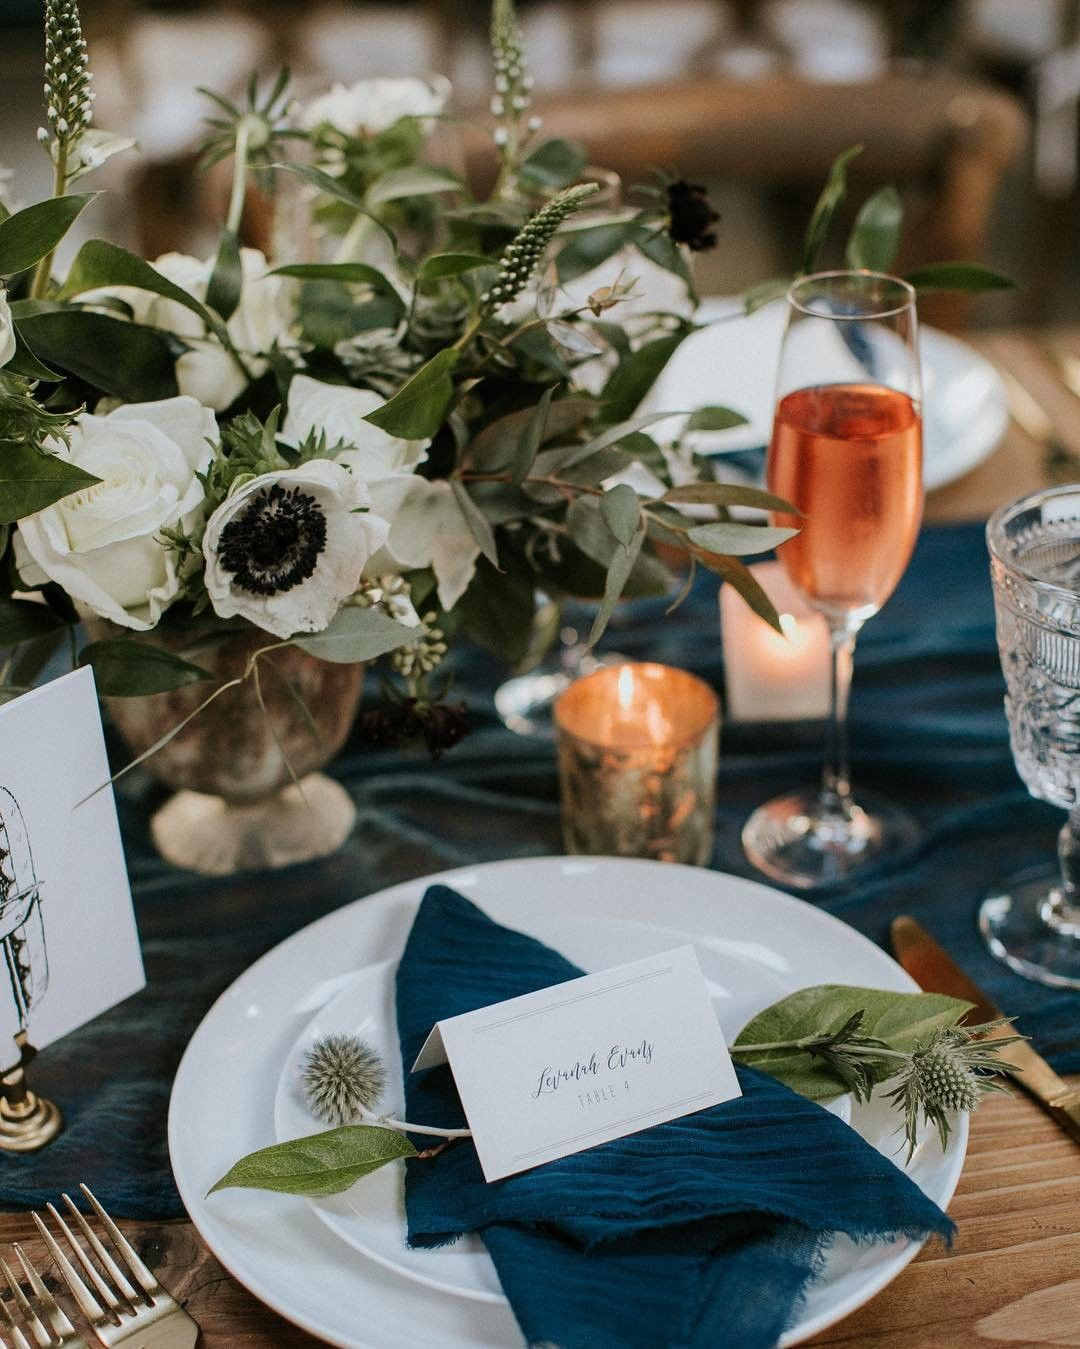 wedding place setting with flowers